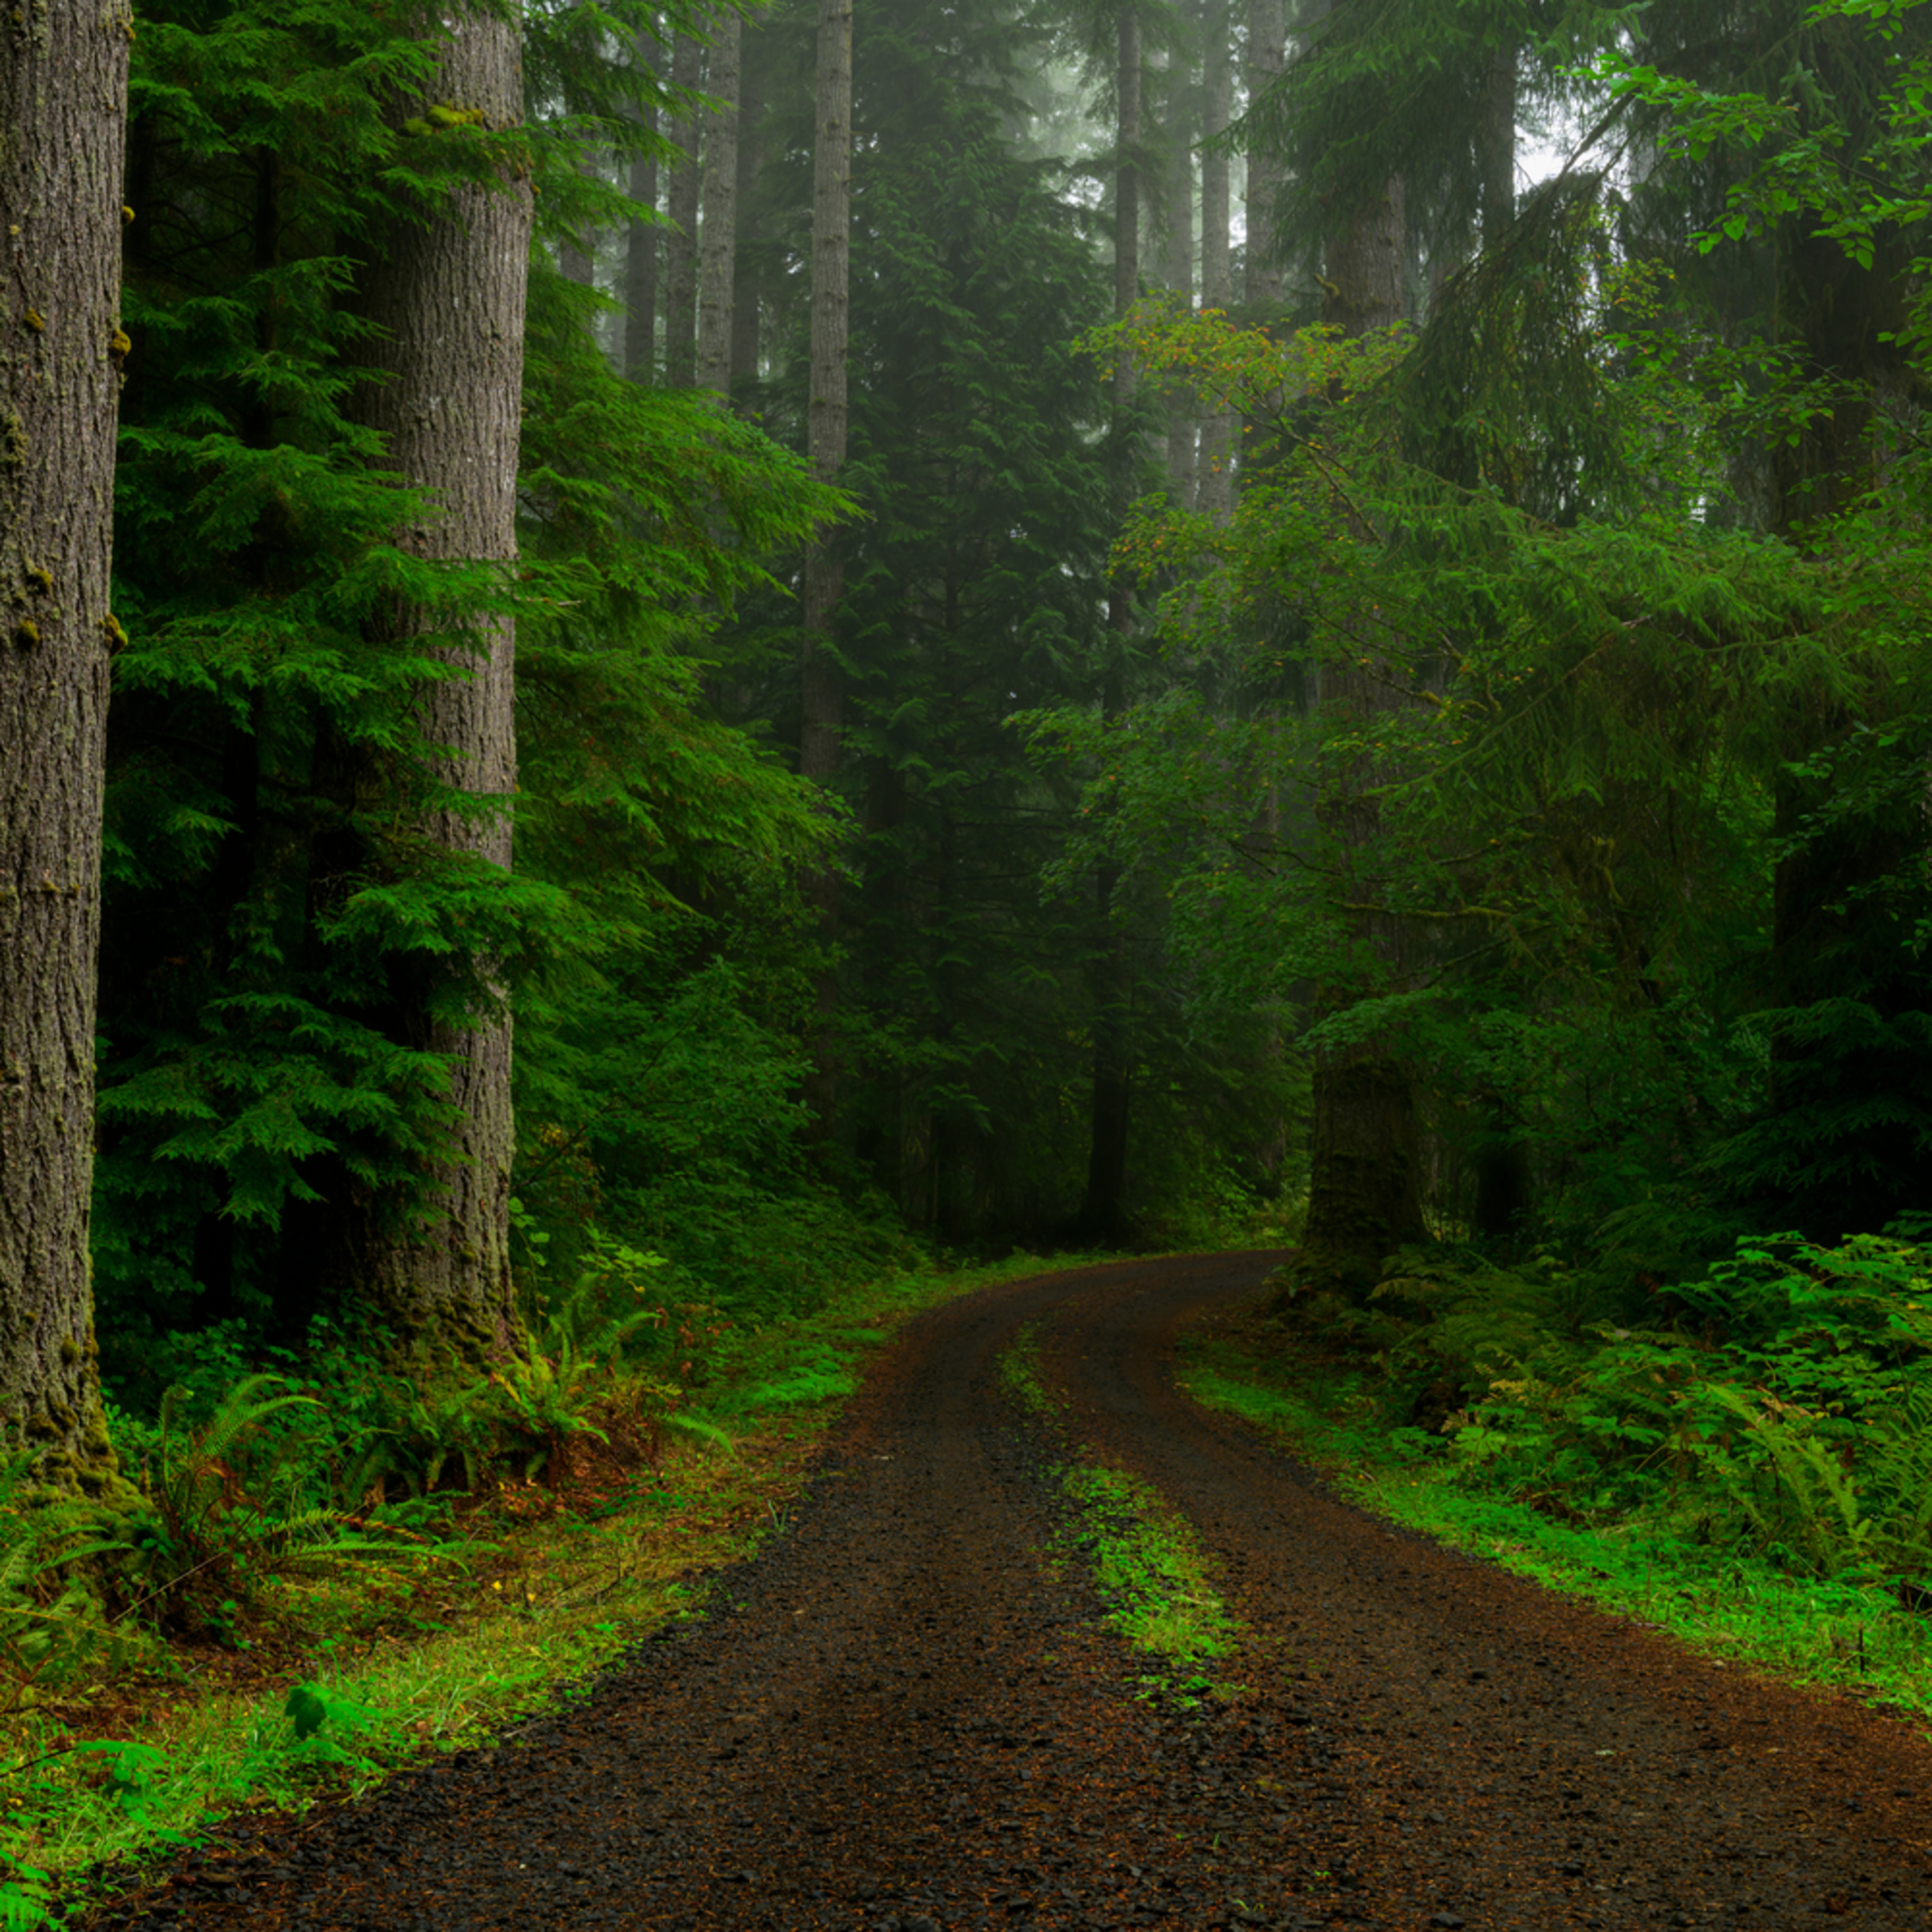 Forest road butte creek washington 2020 dwnjem